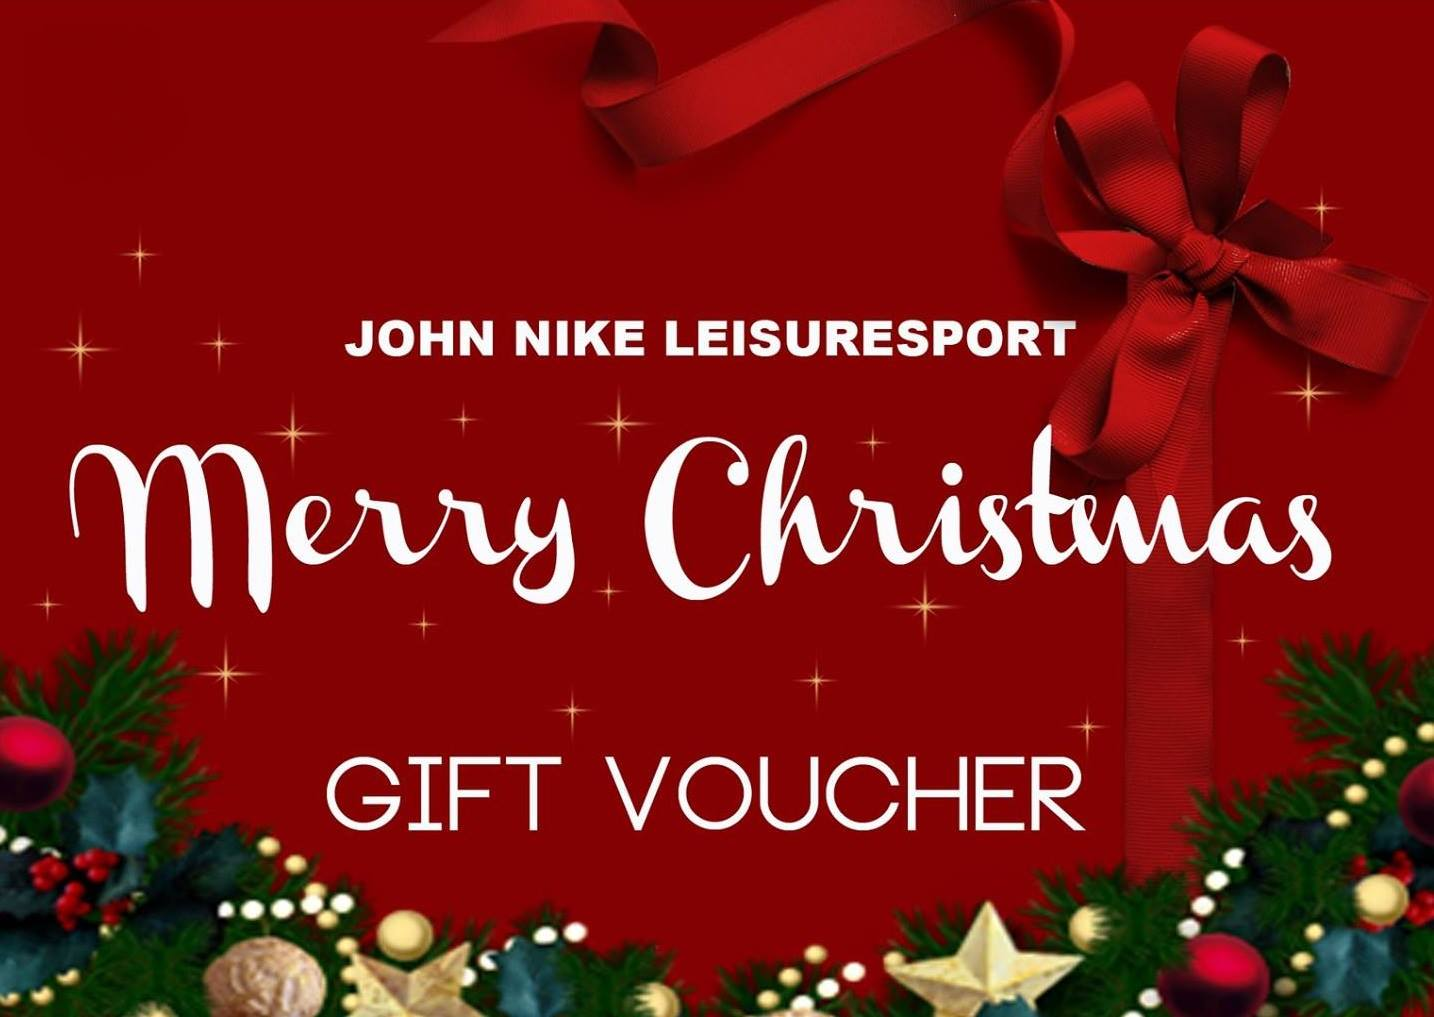 Merry Christmas! Offer a Gift Voucher!